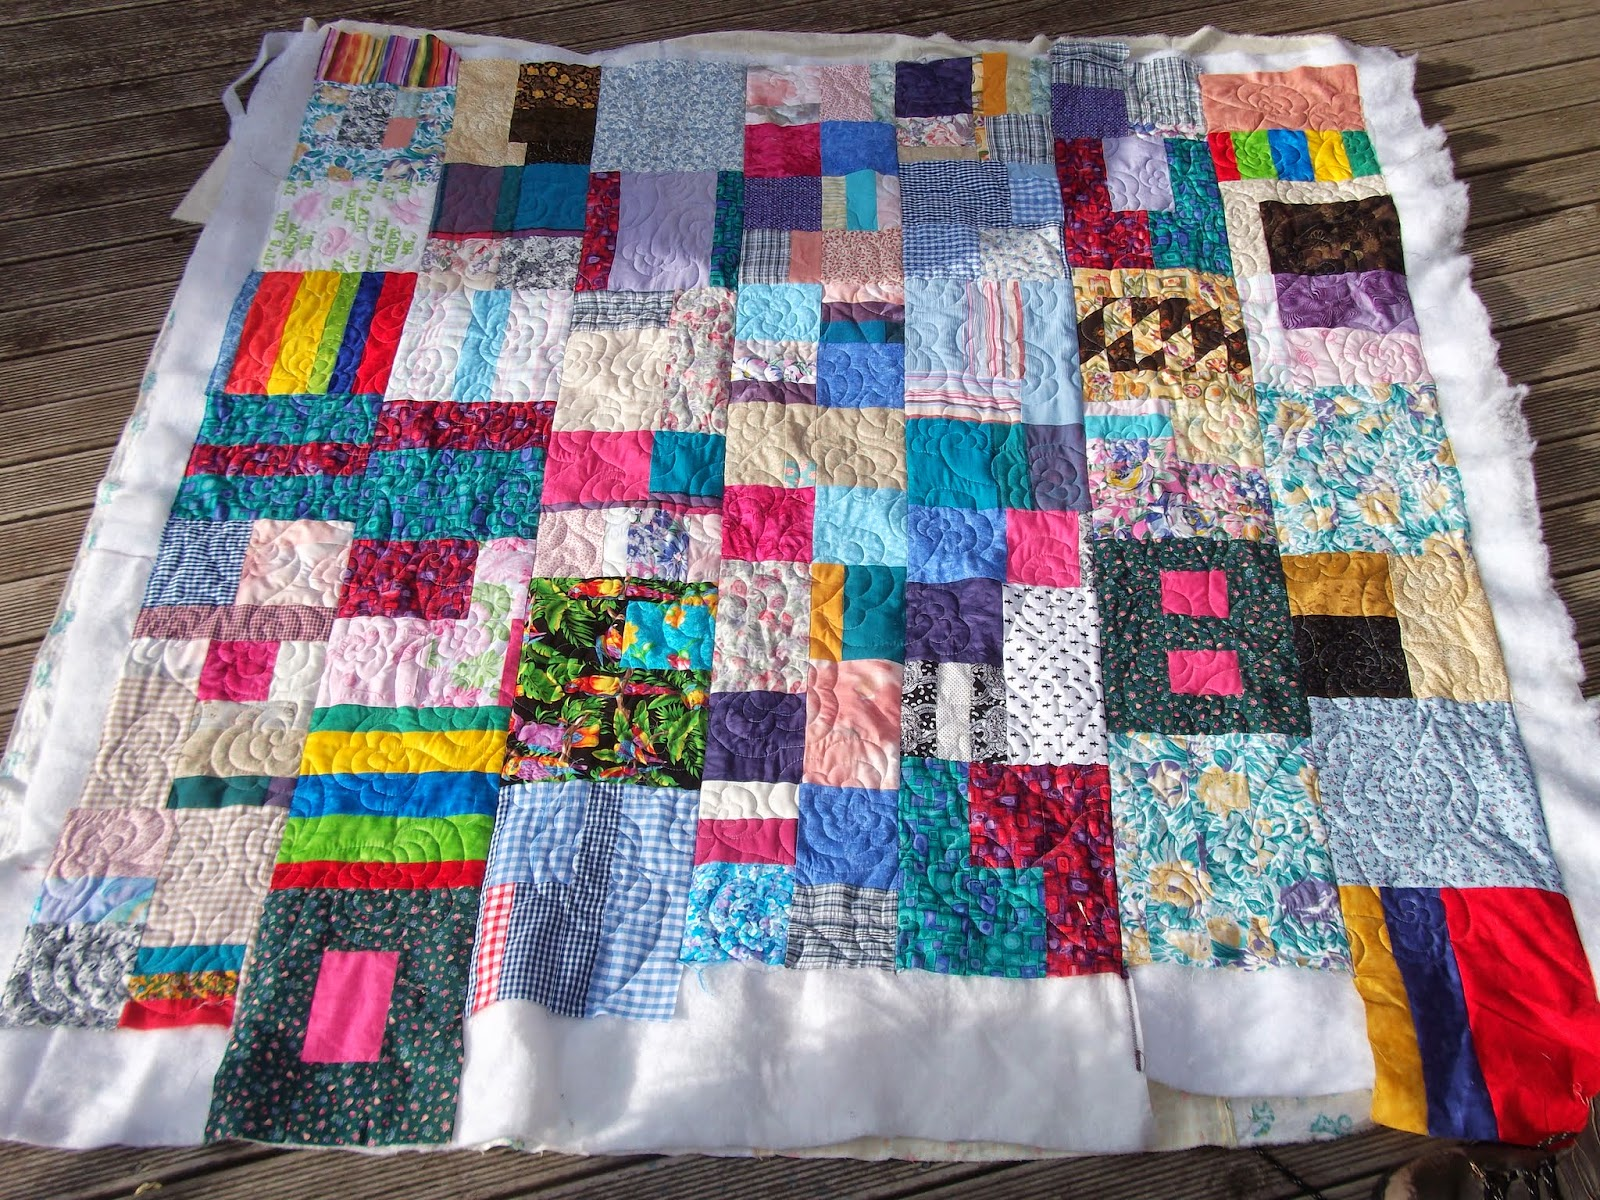 Charity quilting